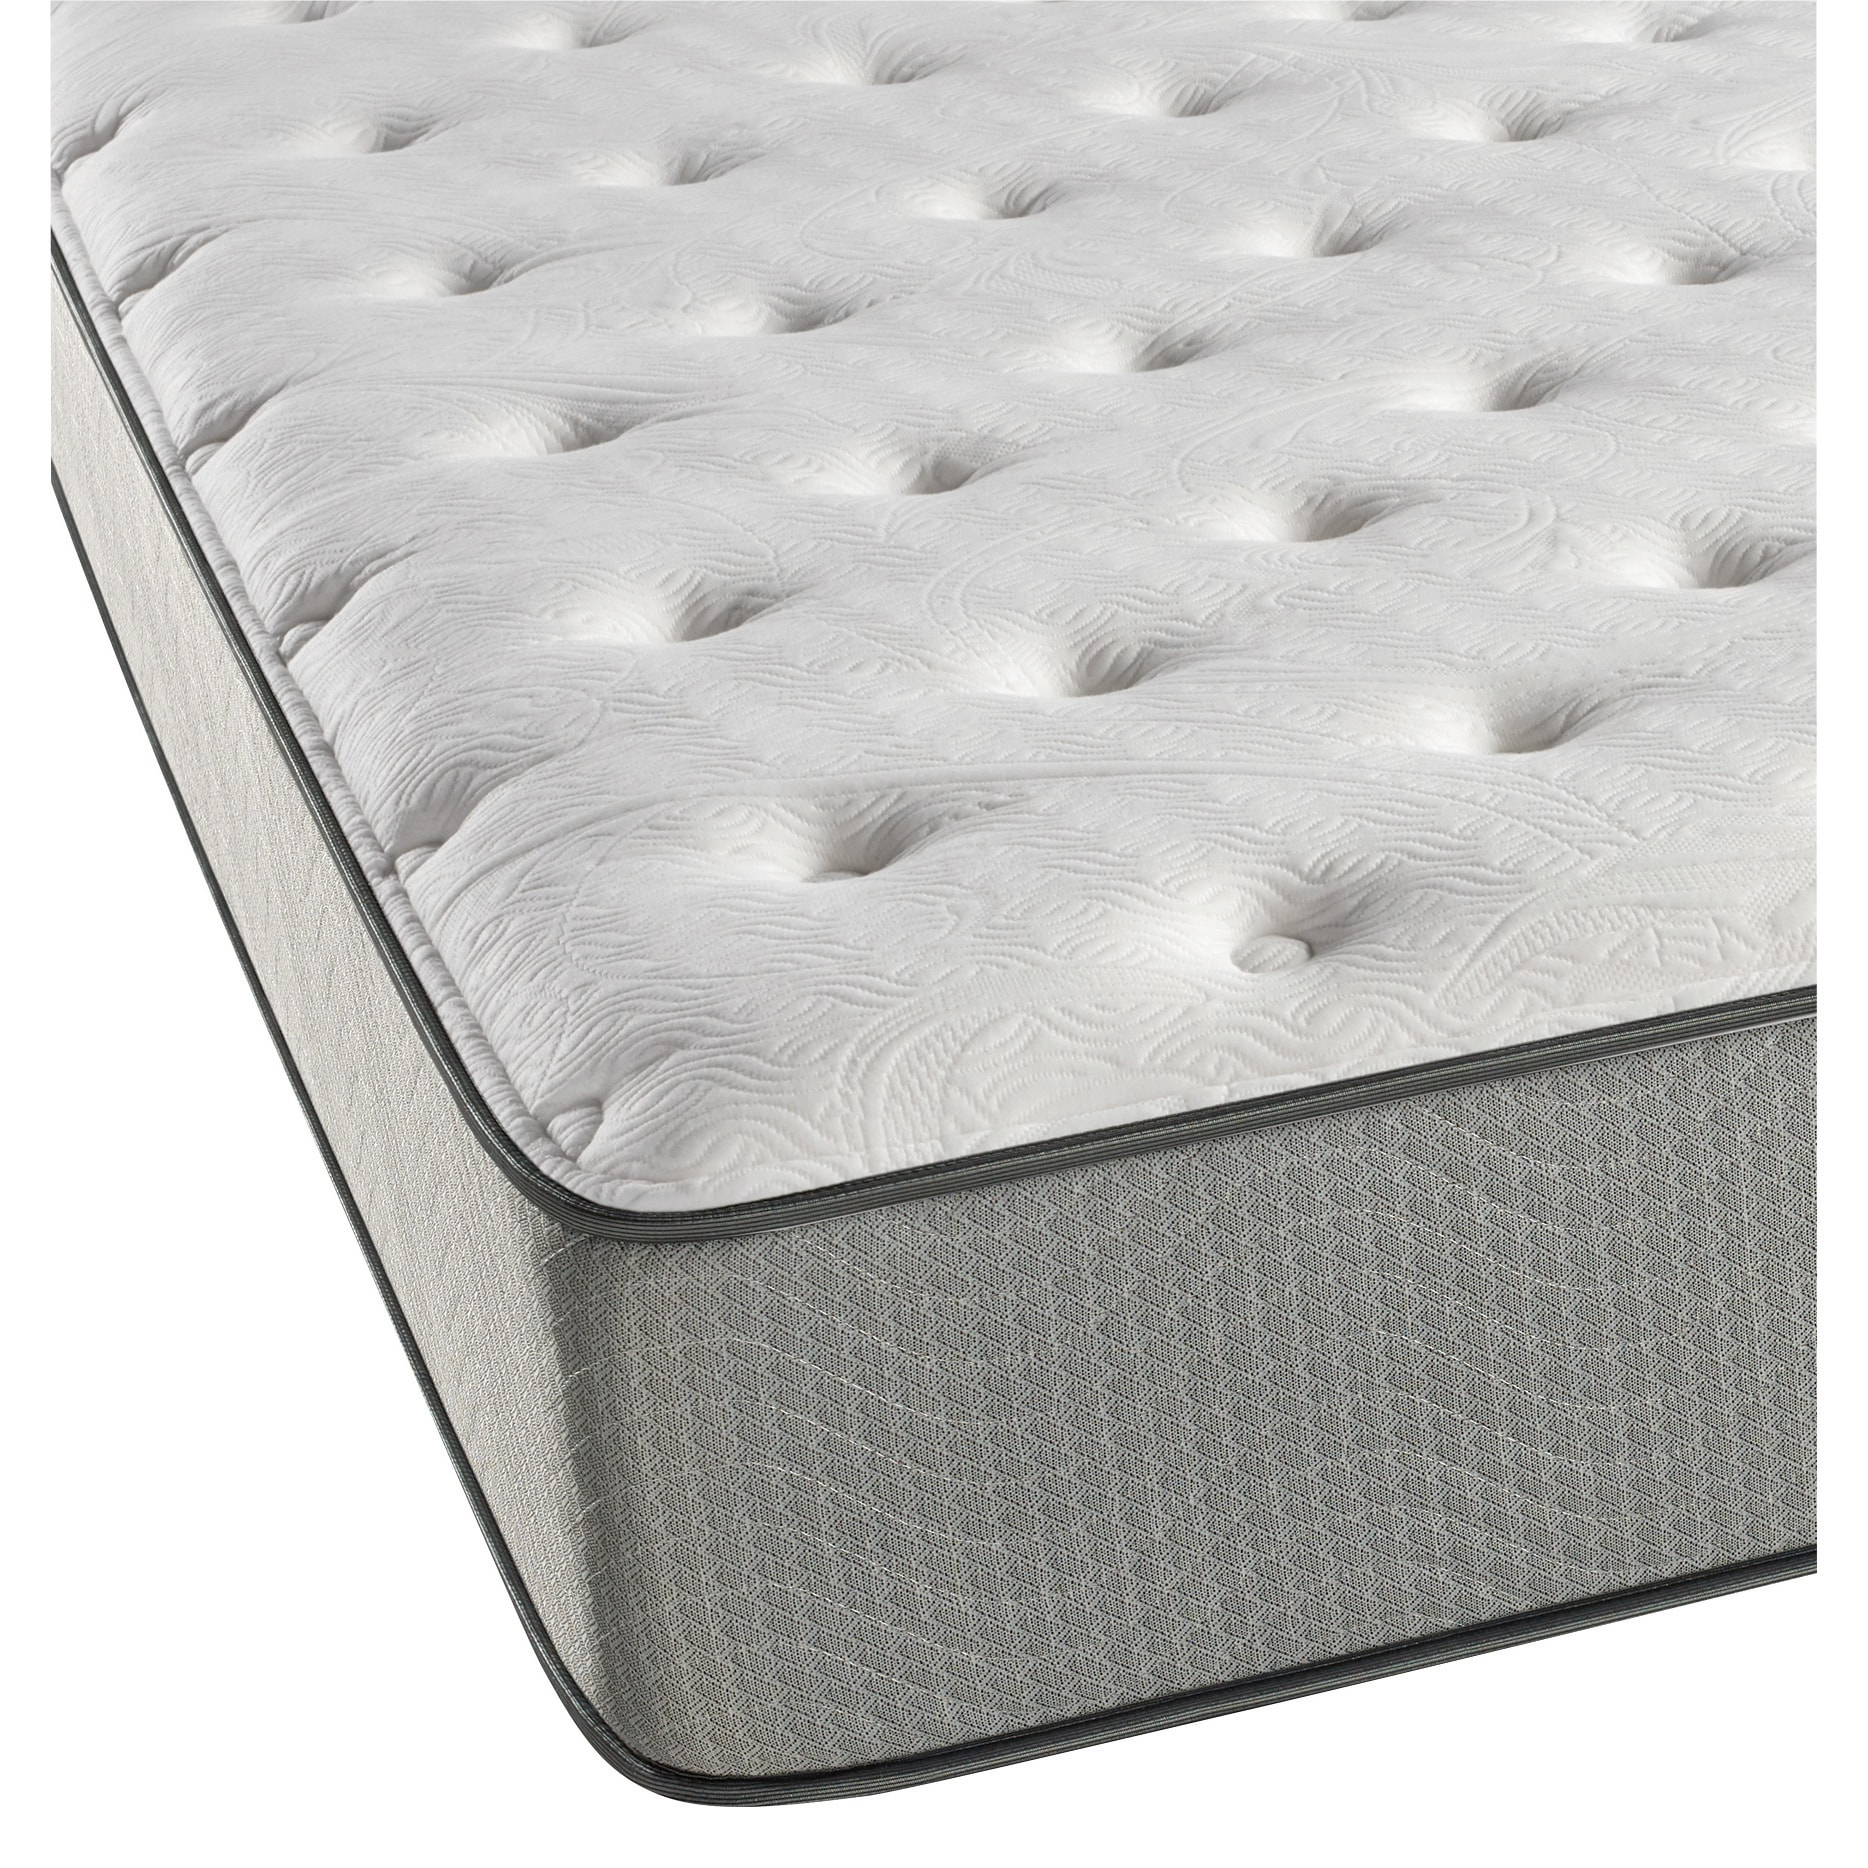 simmons luxury pillowtop mattresses shakespeare beauty recharge firm world beautyrest plush shop houston rest mattress class